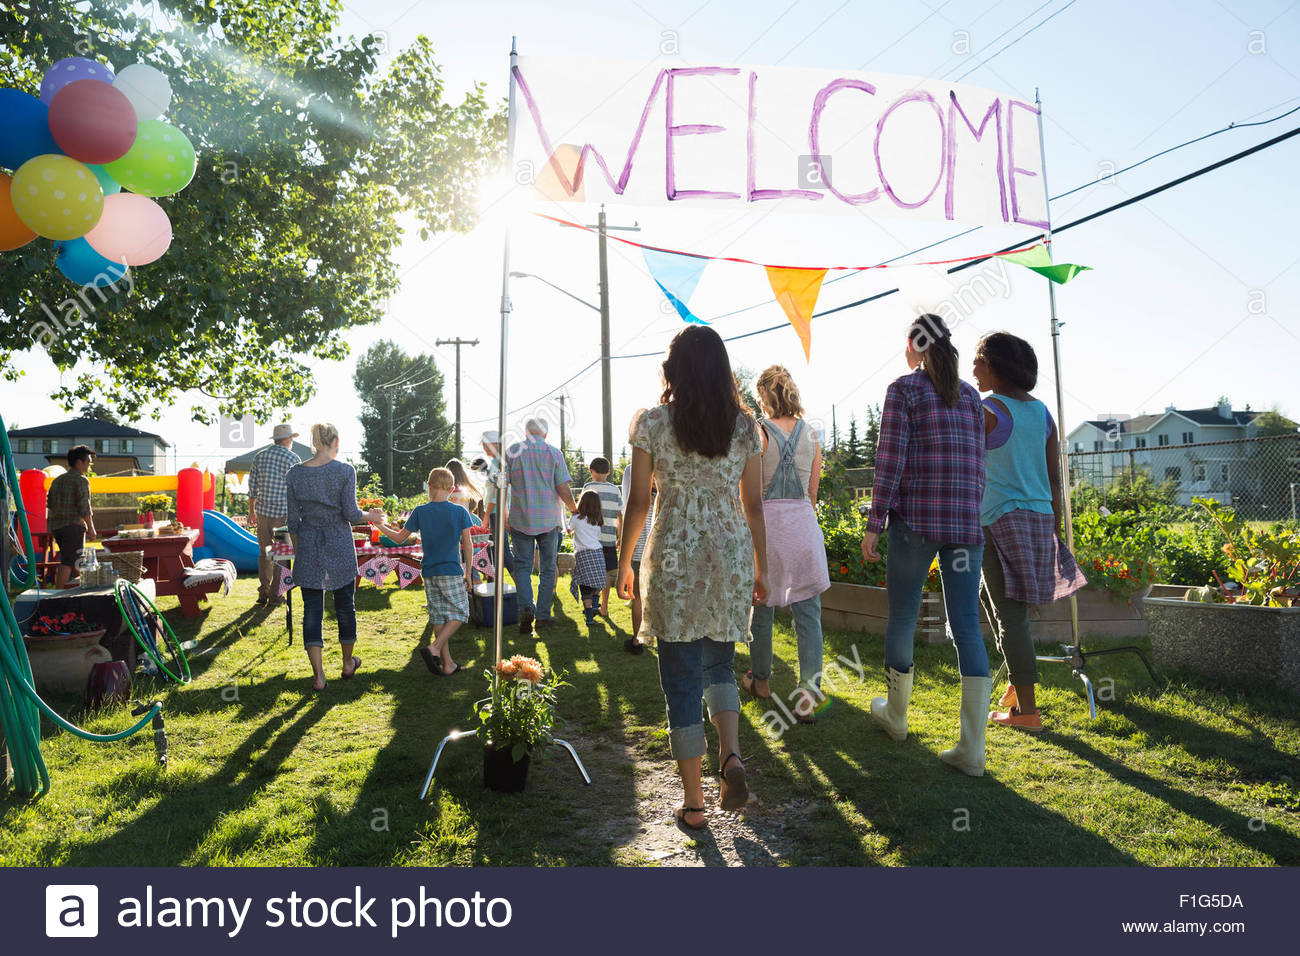 Neighbors entering under Welcome sign party in park - Stock Image